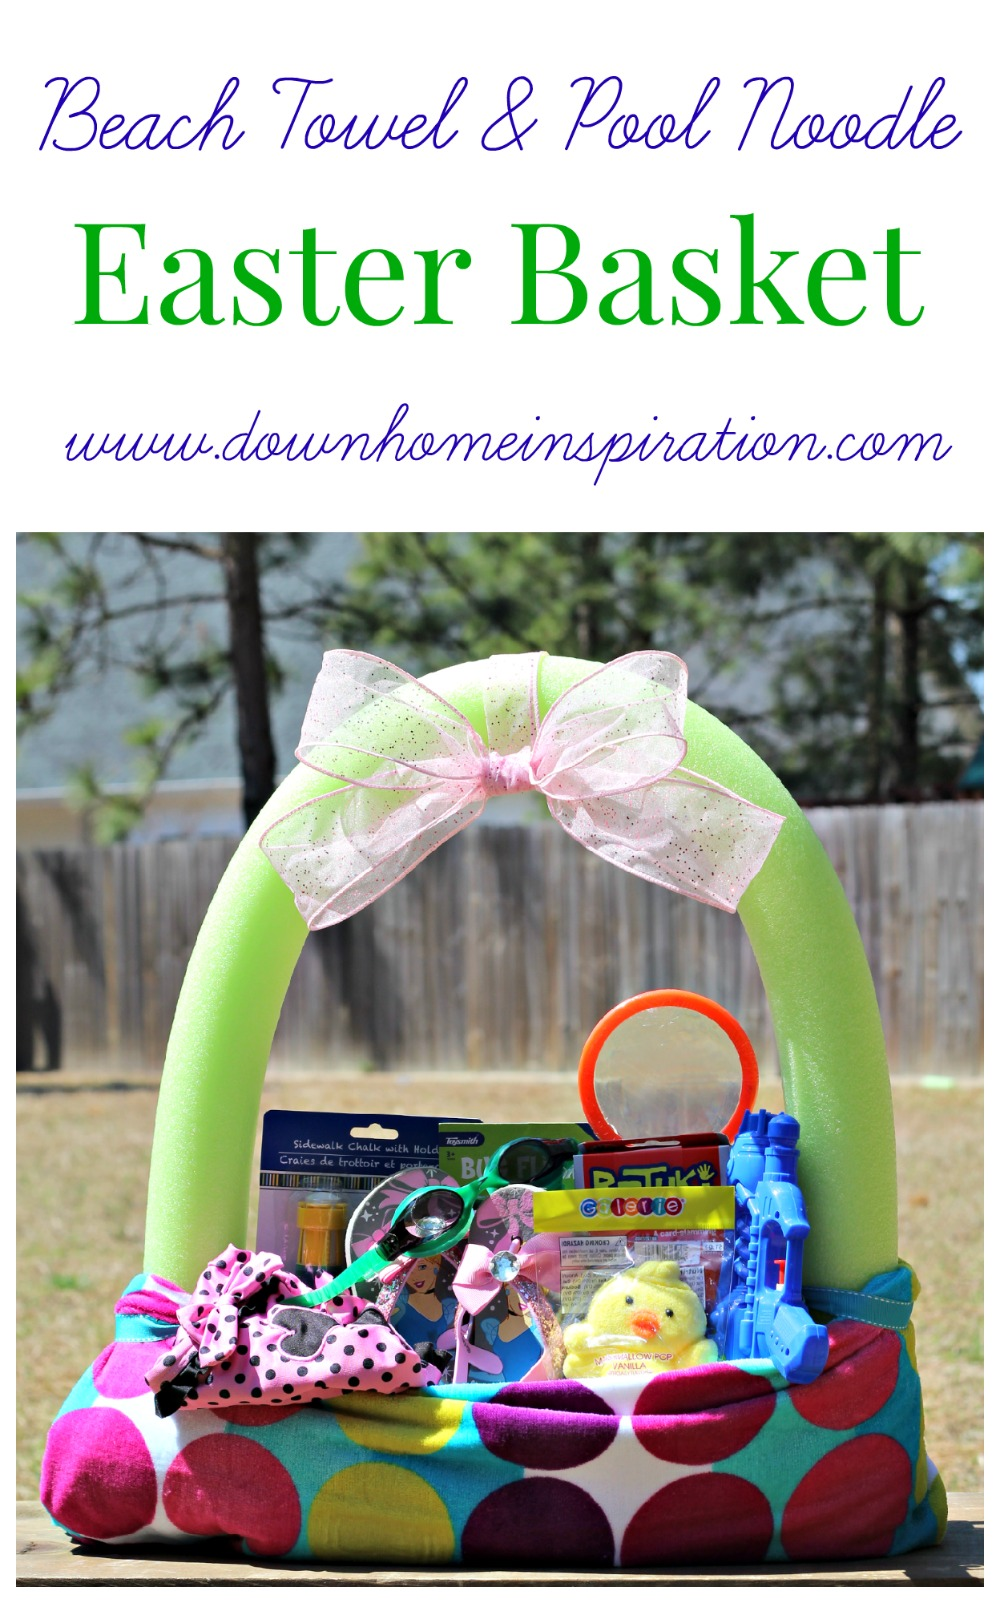 make a fun easter basket using a beach towel and pool noodle down